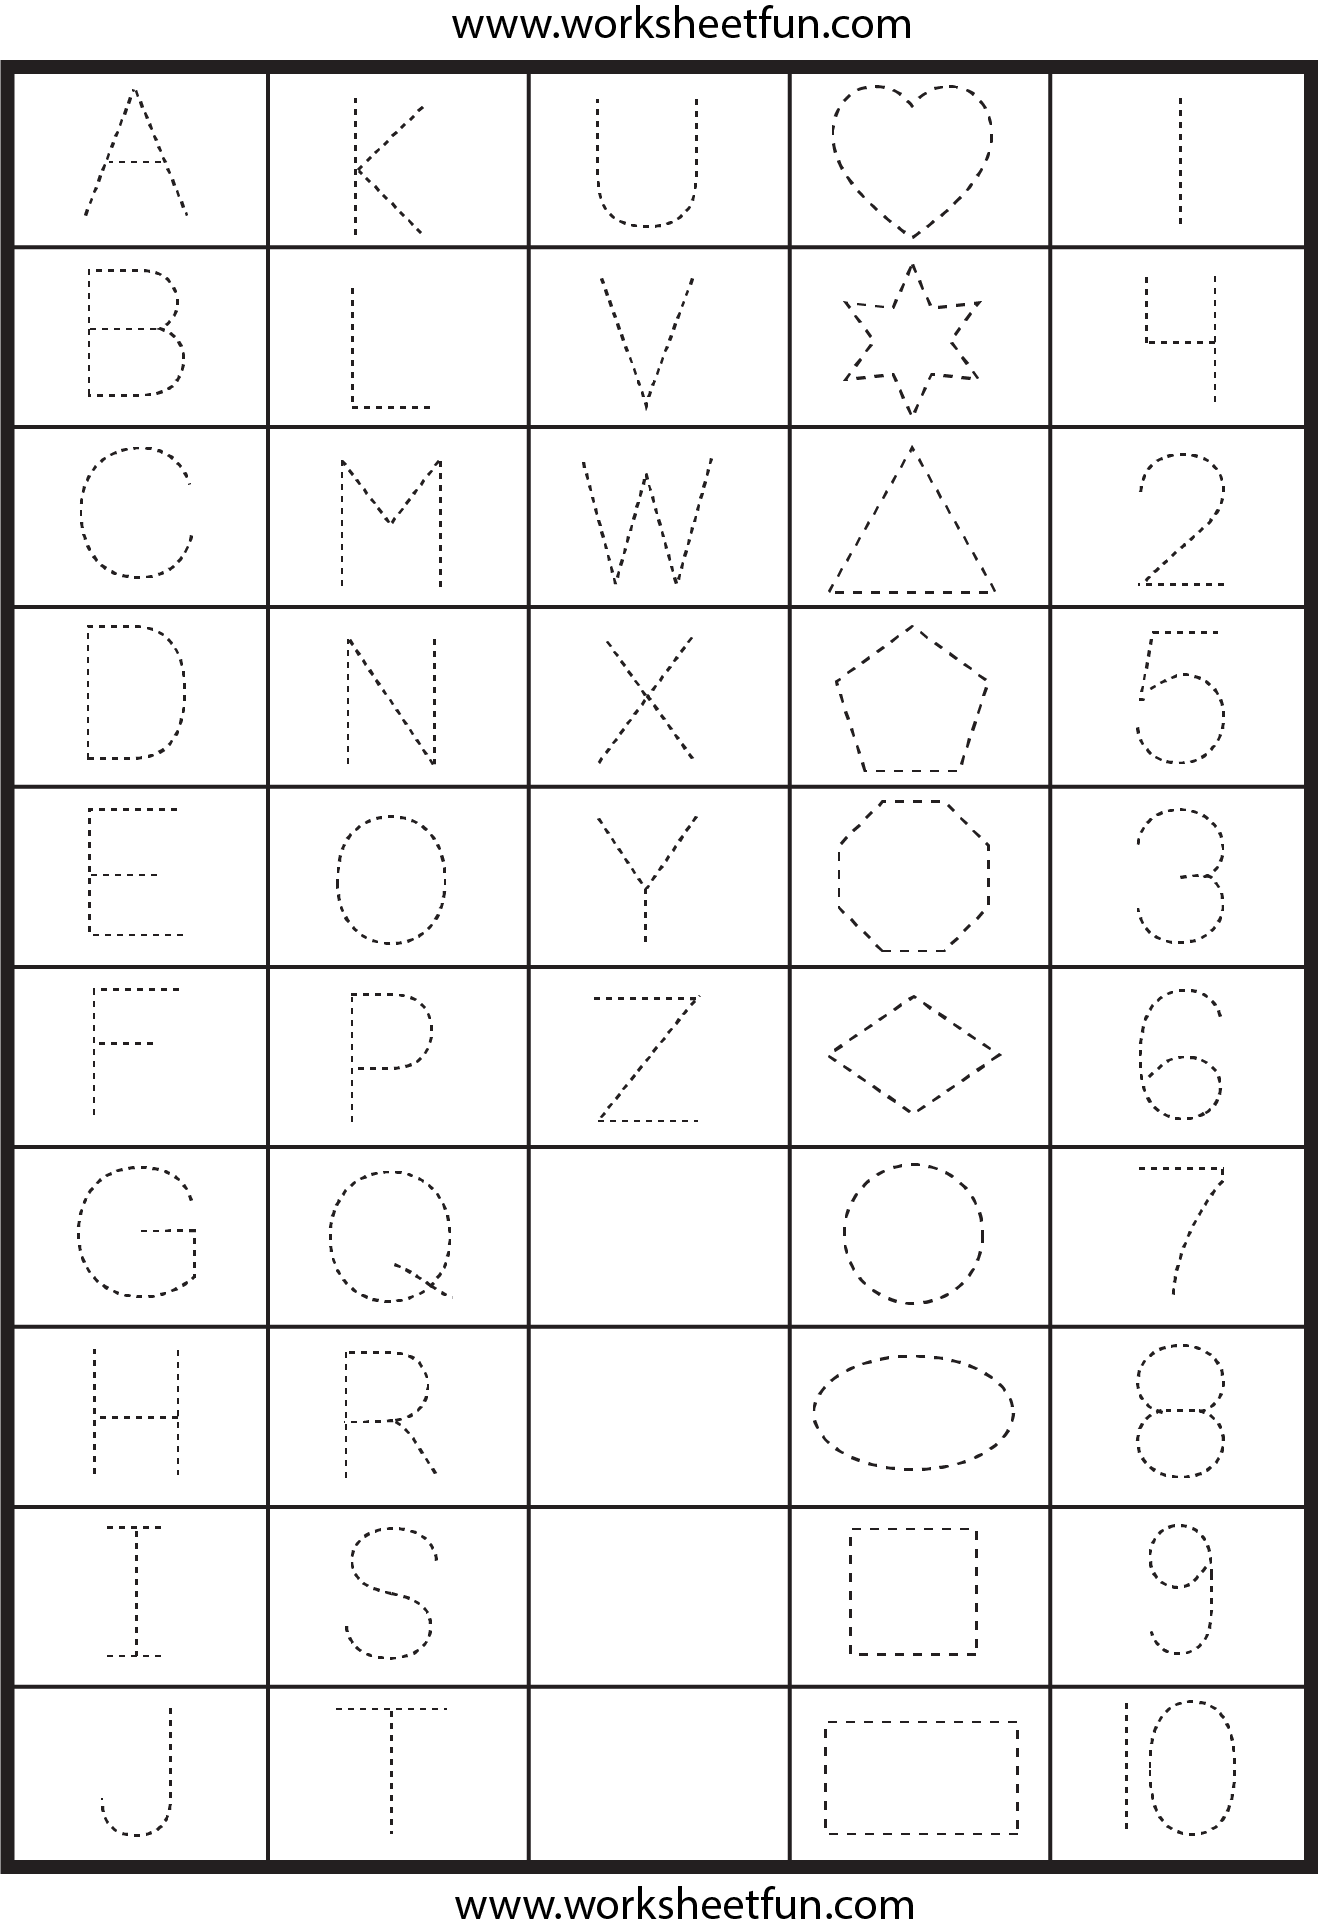 Worksheets Pre K Alphabet Tracing Worksheets letters numbers and shapes tracing worksheets free printable preschool letter tracing